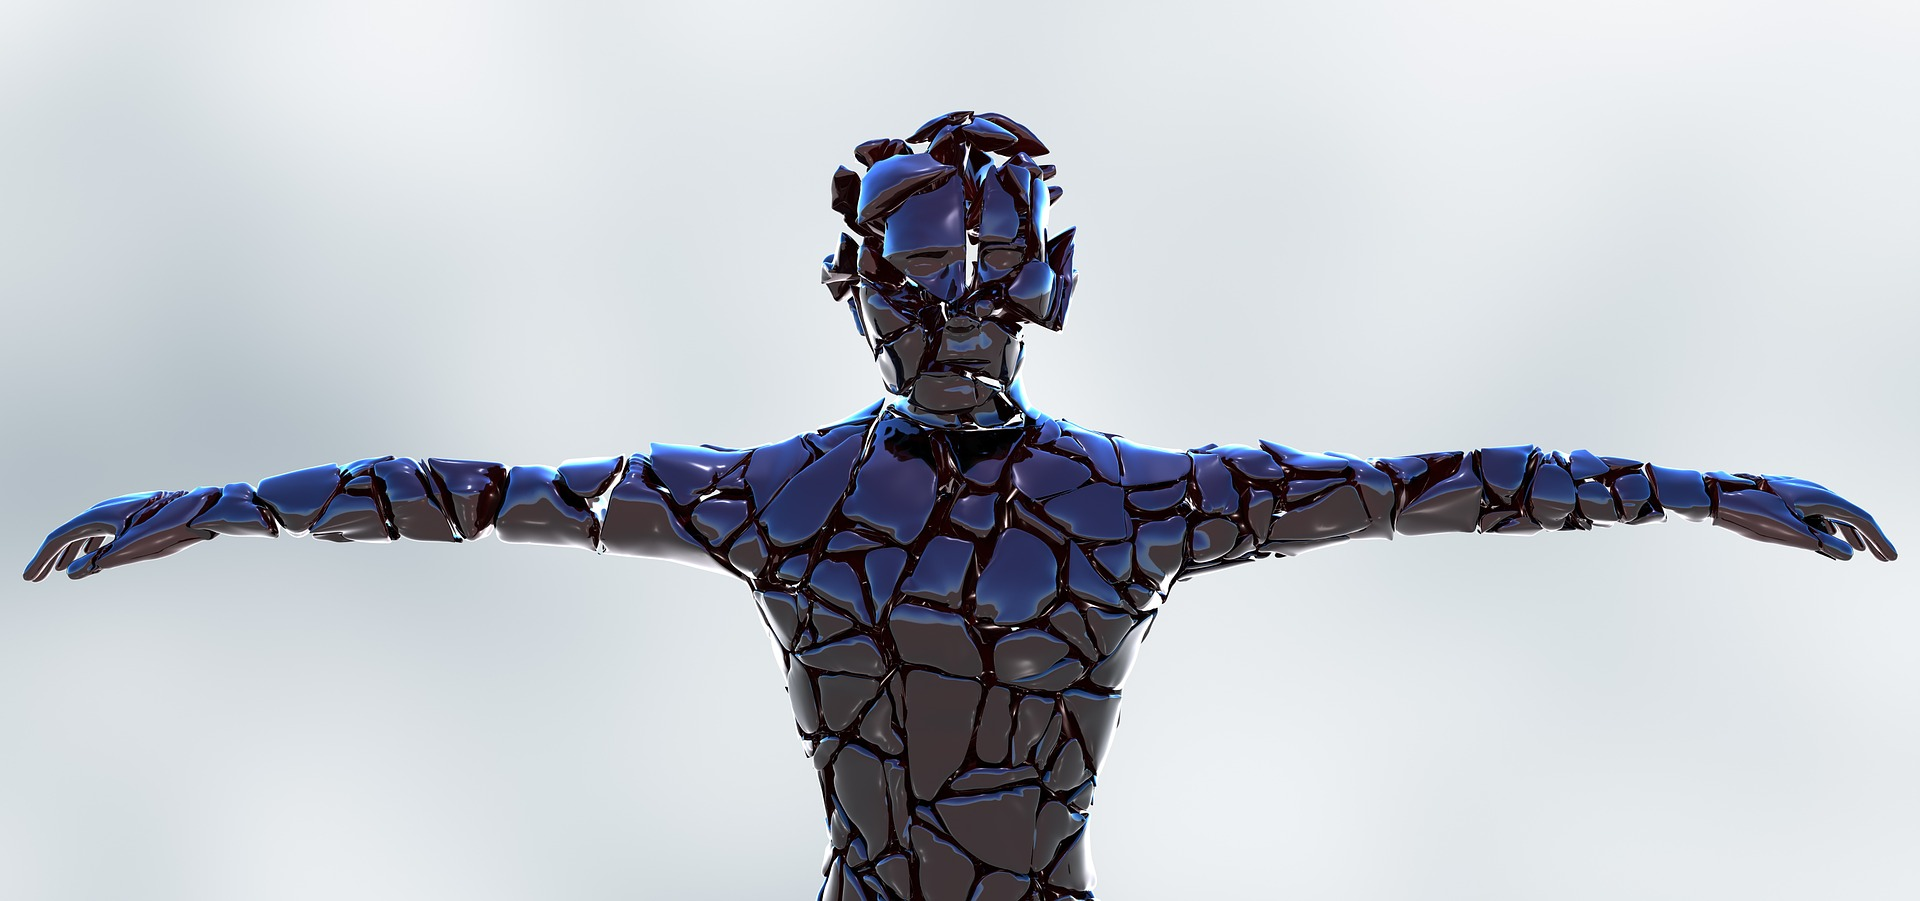 The Future of the Bionic Body